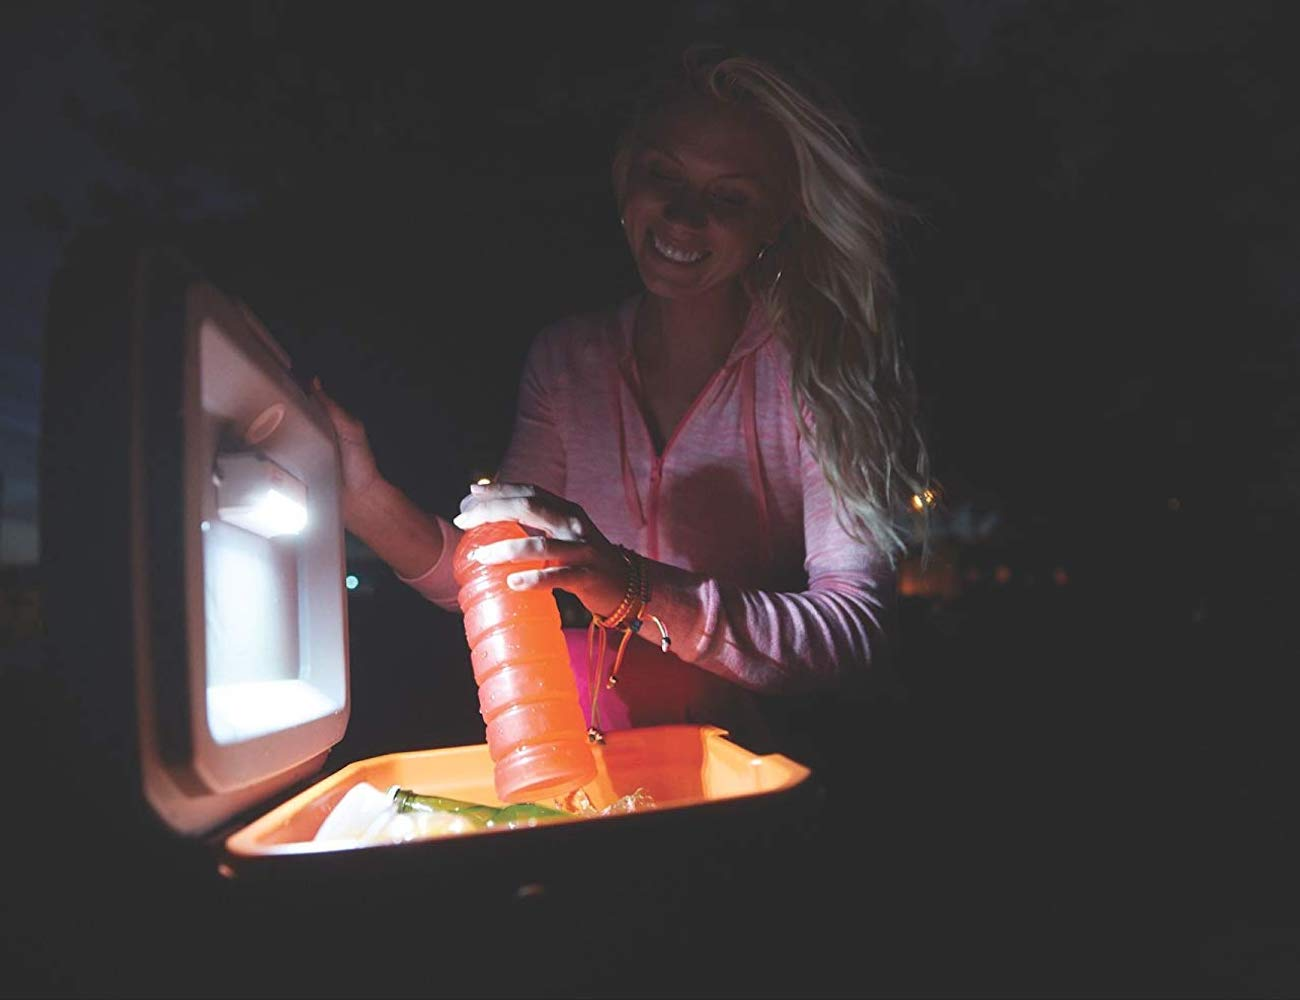 Coleman Cold Glow Cooler Lid Light lets you see in the dark